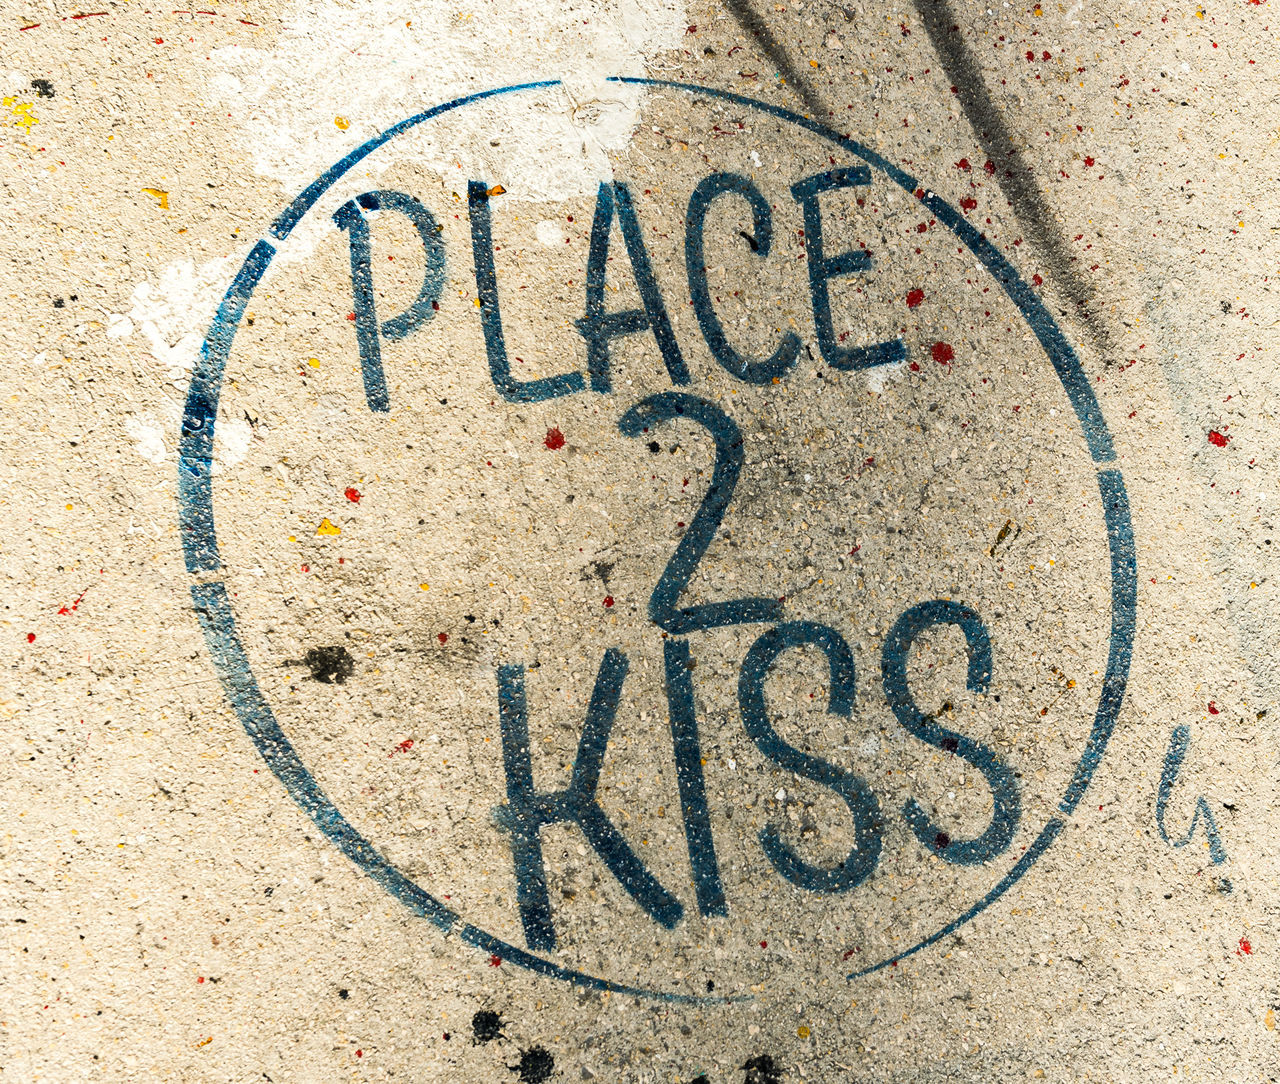 Close-up Communication Day Forbidden No People Outdoors Pavement Place 2 Kiss Sidewalk Wynwood Walls